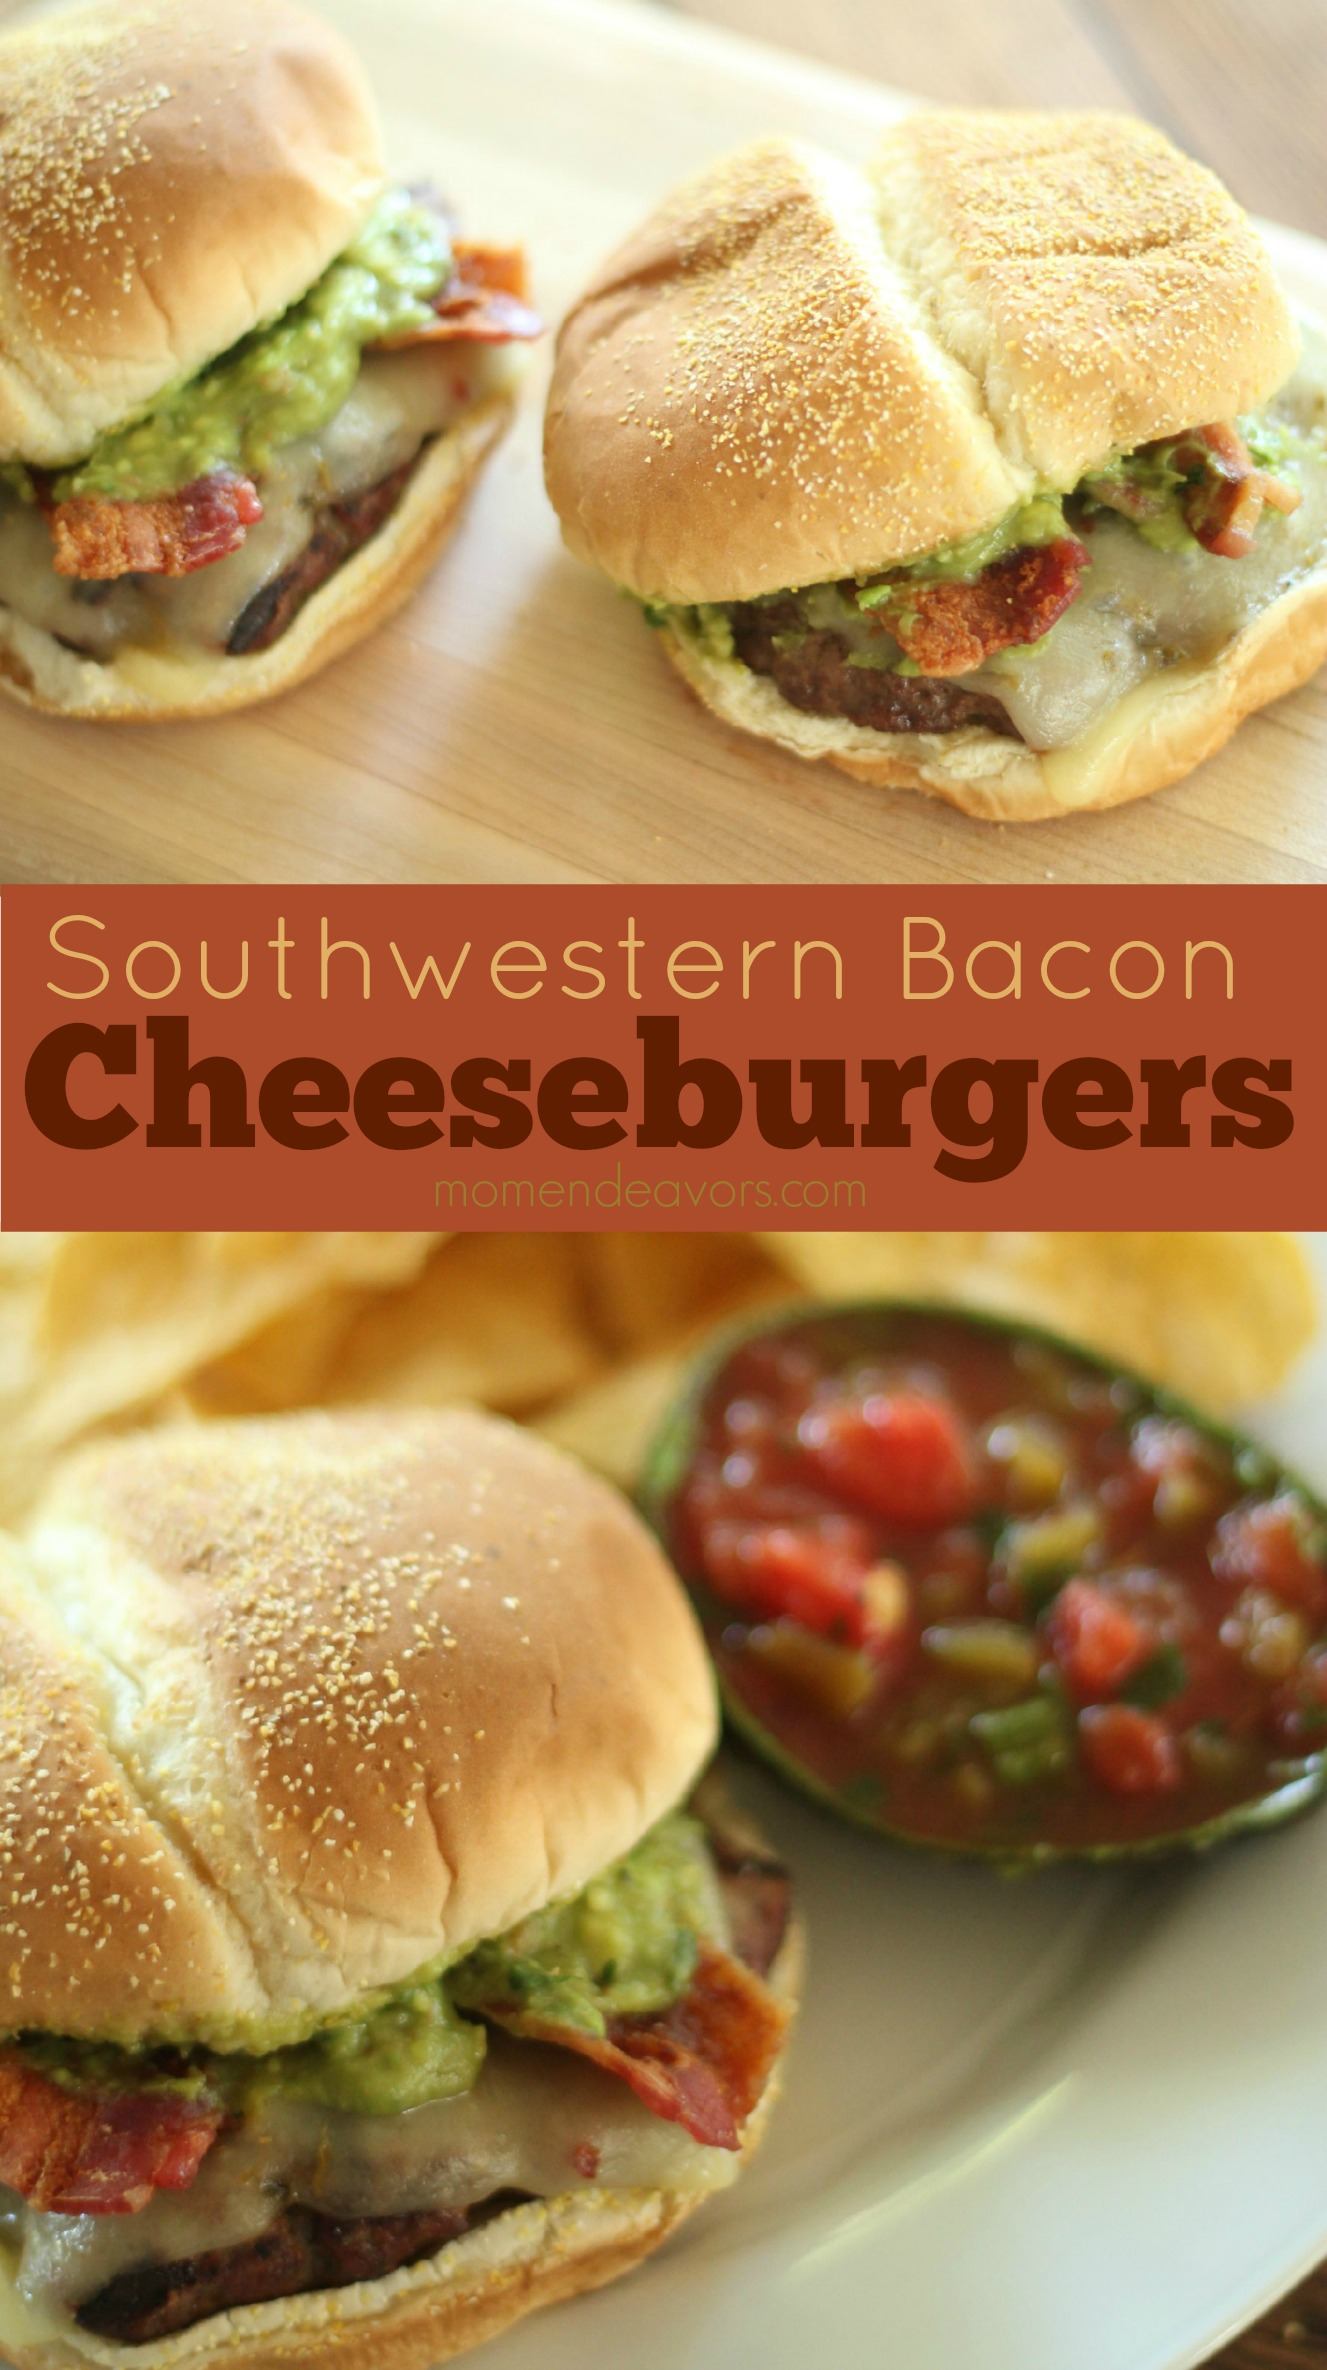 Easy Southwestern Bacon Cheeseburgers with Guacamole